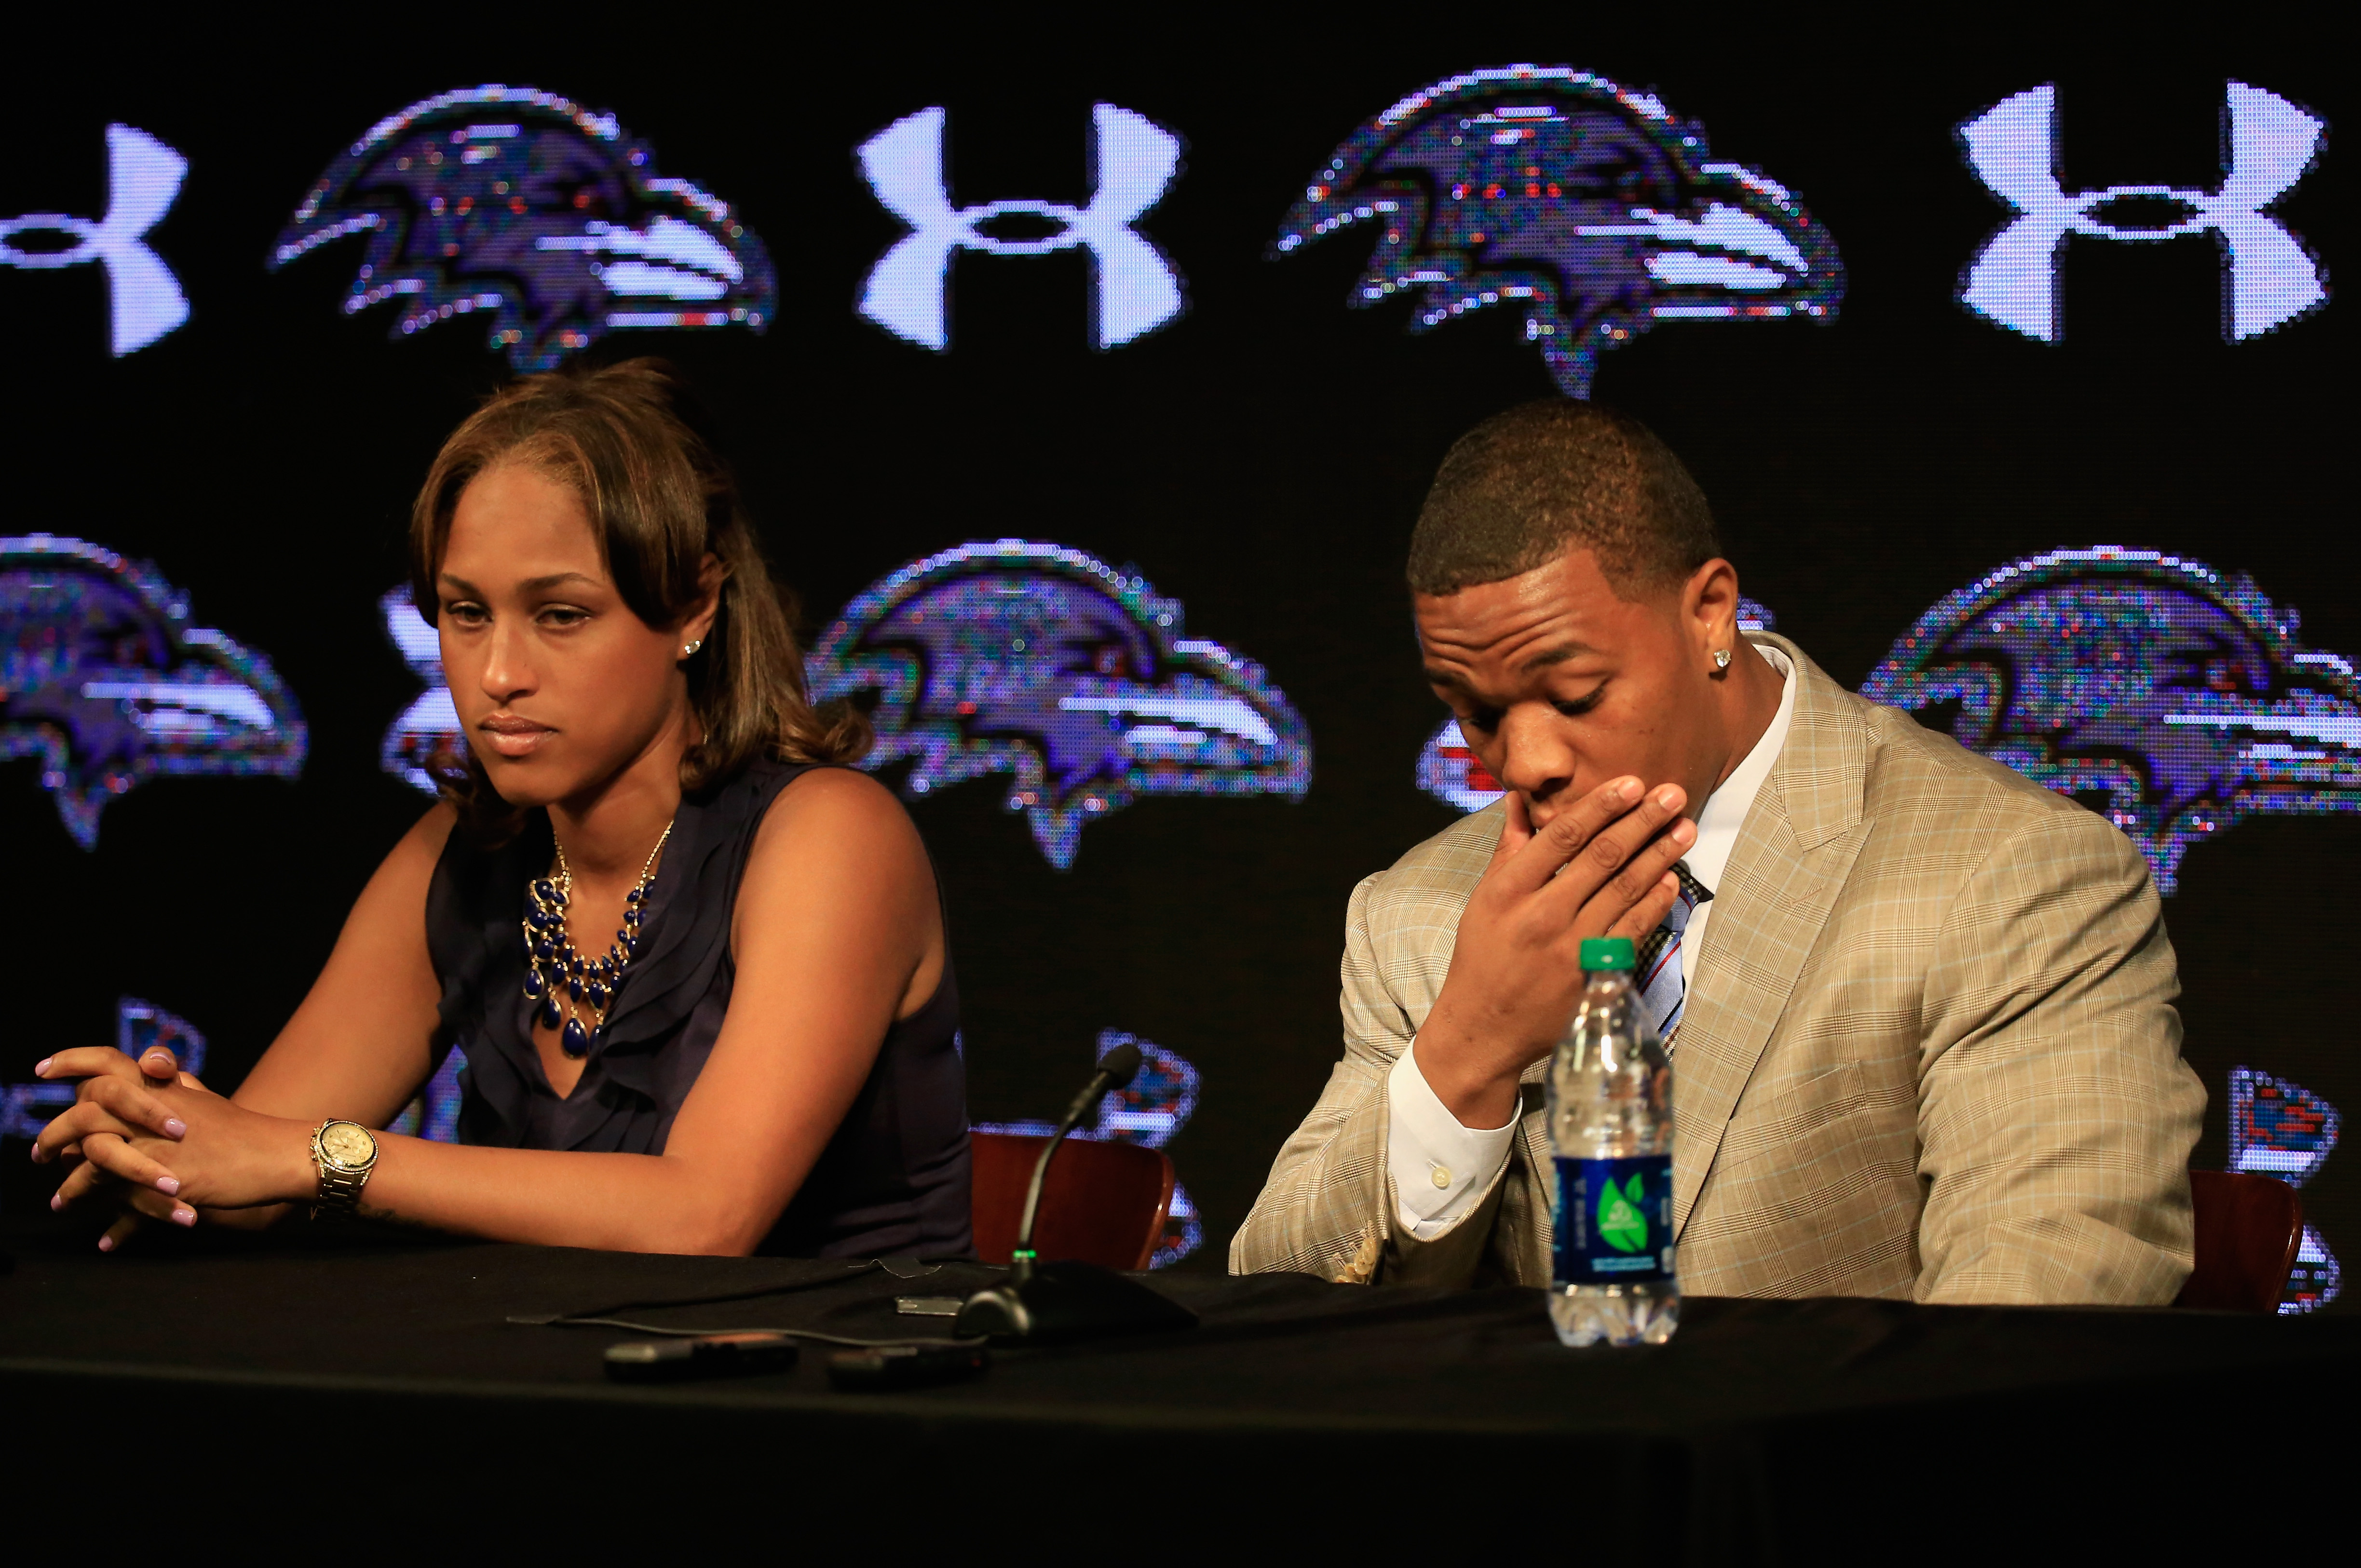 Running back Ray Rice of the Baltimore Ravens pauses while addressing a news conference with his wife Janay at the Ravens training center on May 23, 2014 in Owings Mills, Maryland.